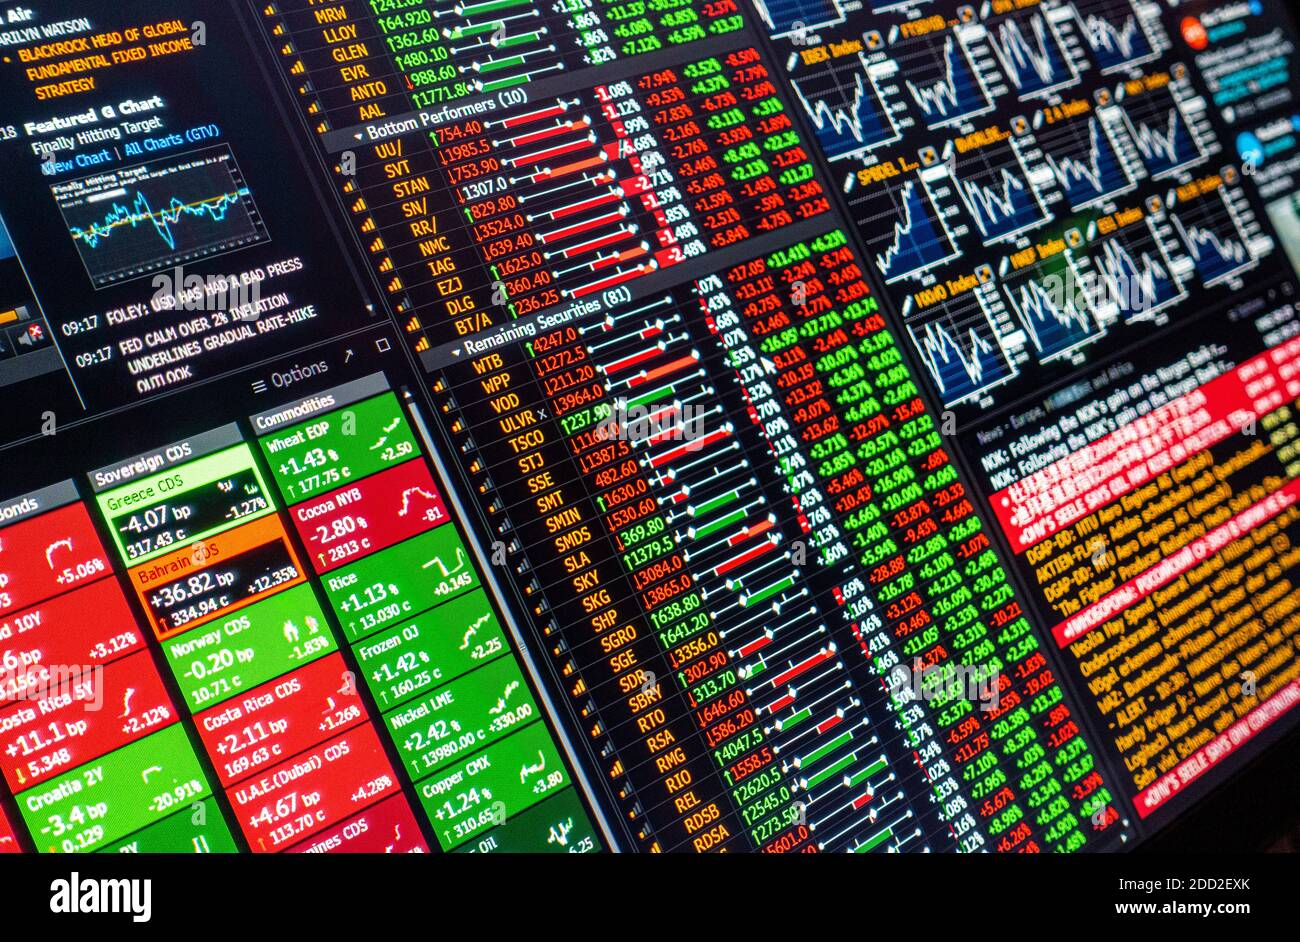 https://c7.alamy.com/comp/2DD2EXK/computer-screen-close-up-showing-stock-exchange-finance-data-financial-markets-stocks-shares-commodities-credit-default-swaps-cds-stock-market-news-2DD2EXK.jpg